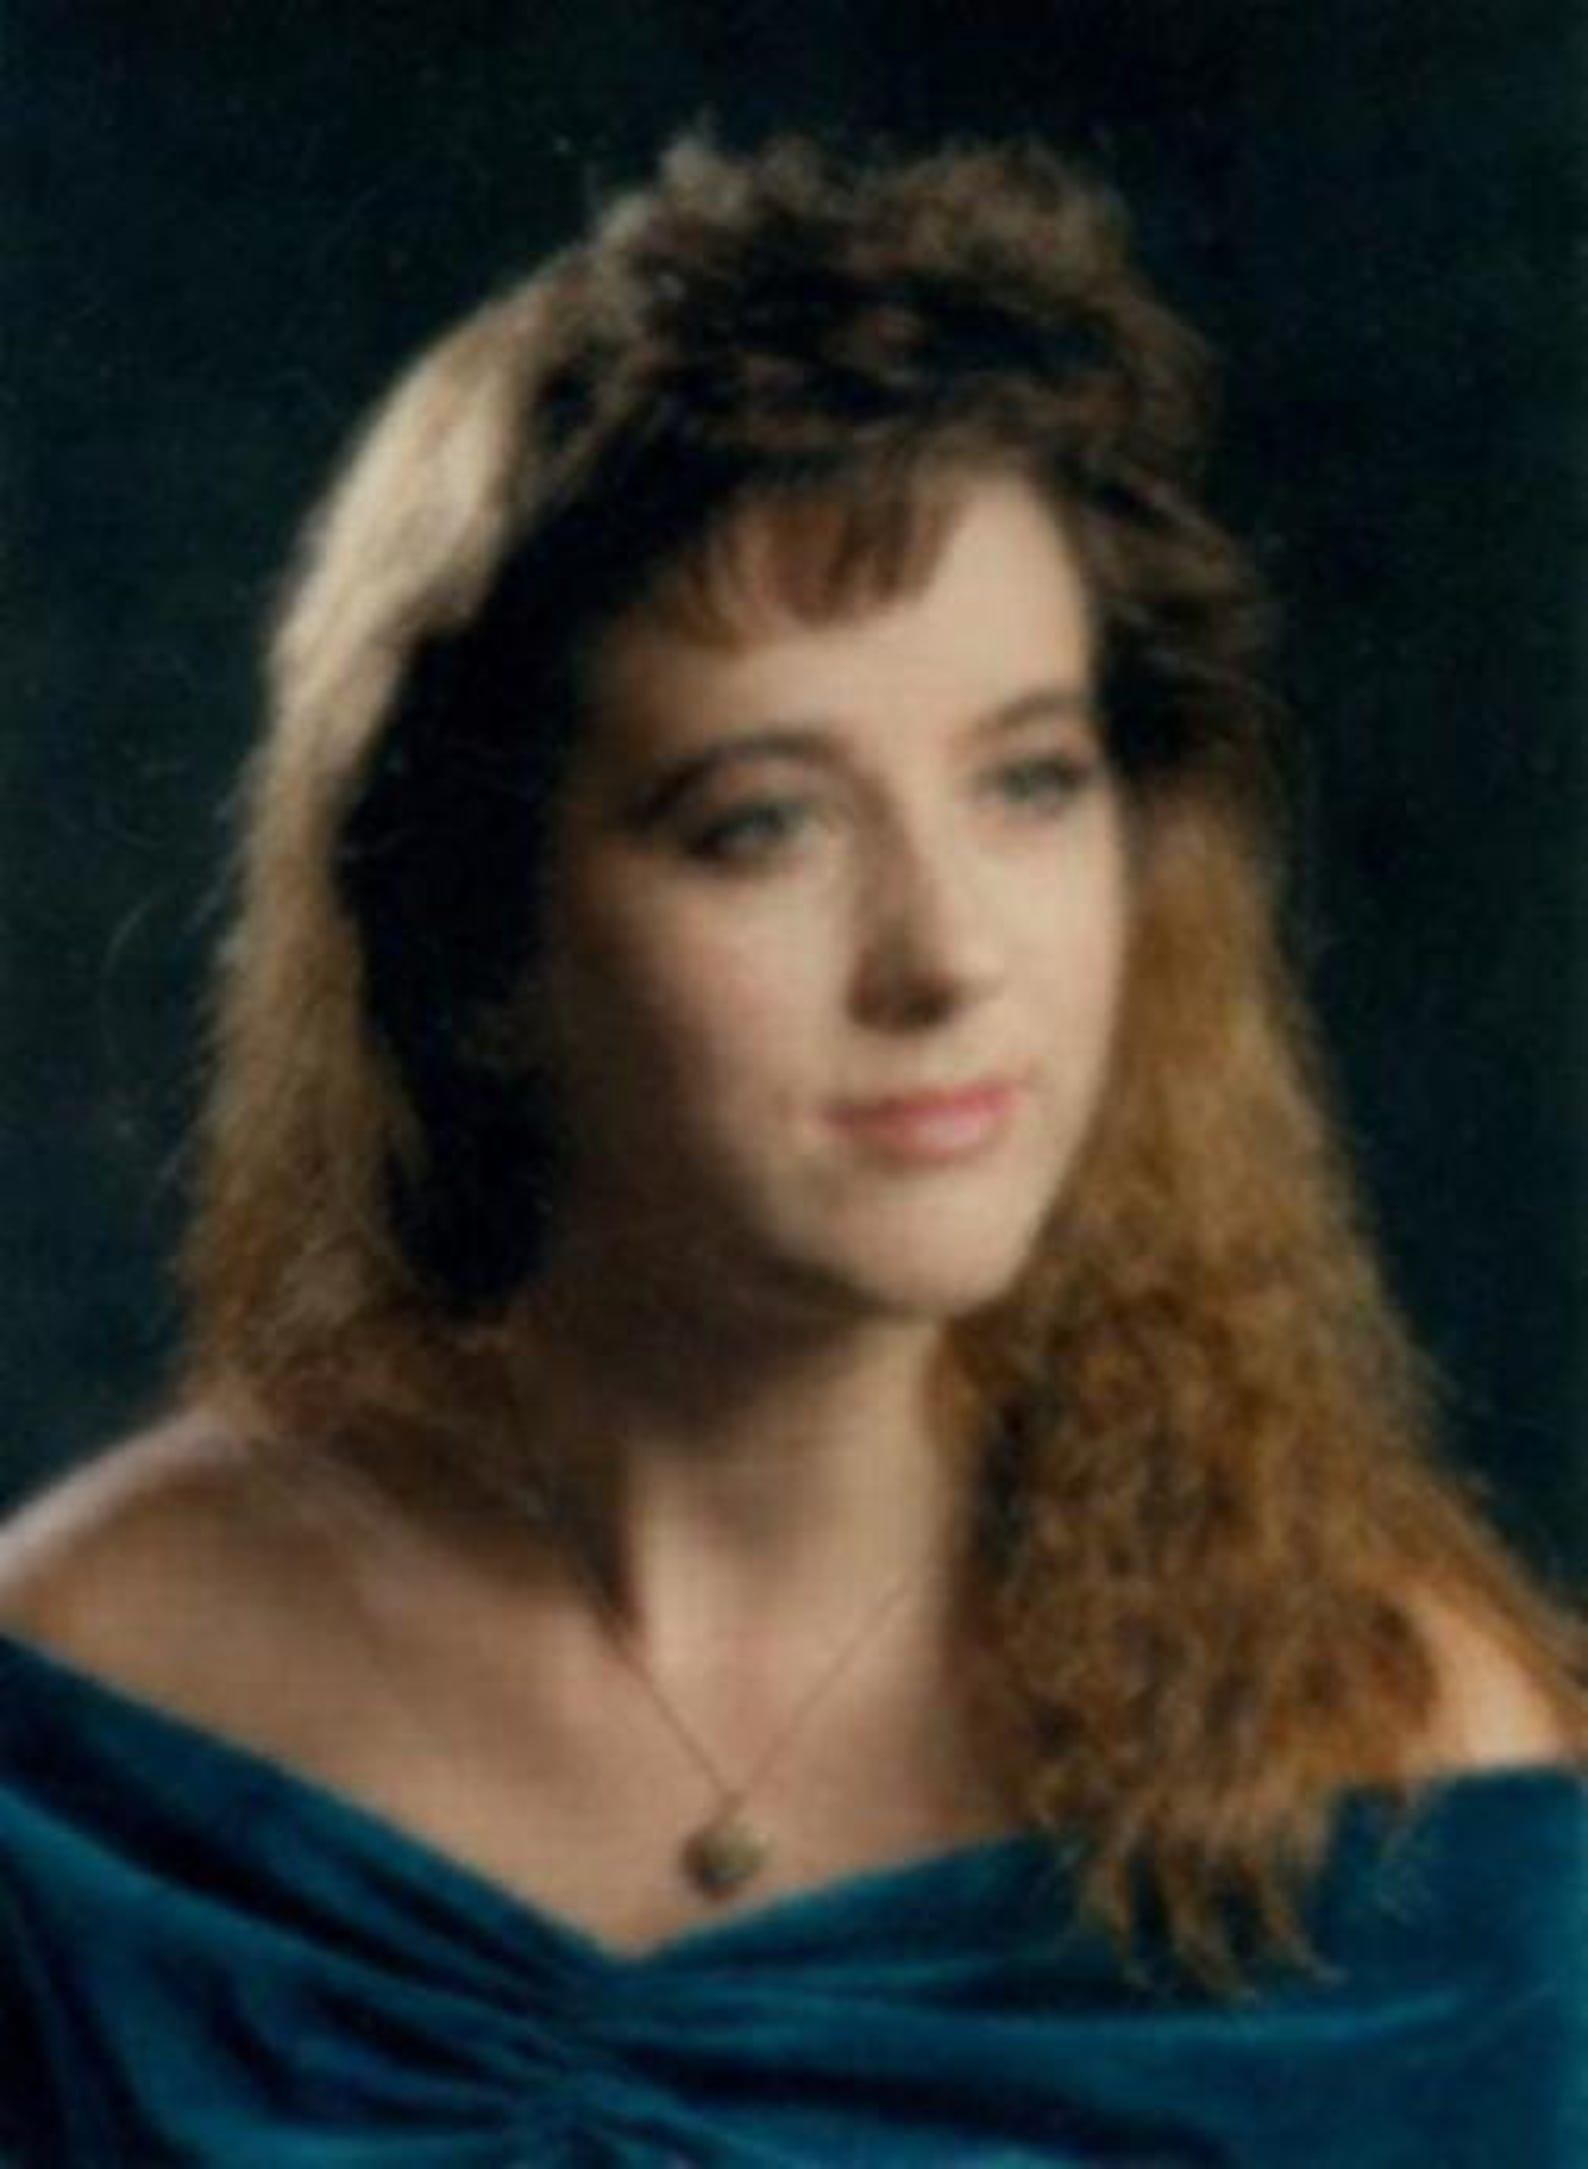 Tara Leigh Calico was 19 when she went missing from Valencia County, New Mexico, on Sept. 20, 1988.More information and age-progressed photos here.